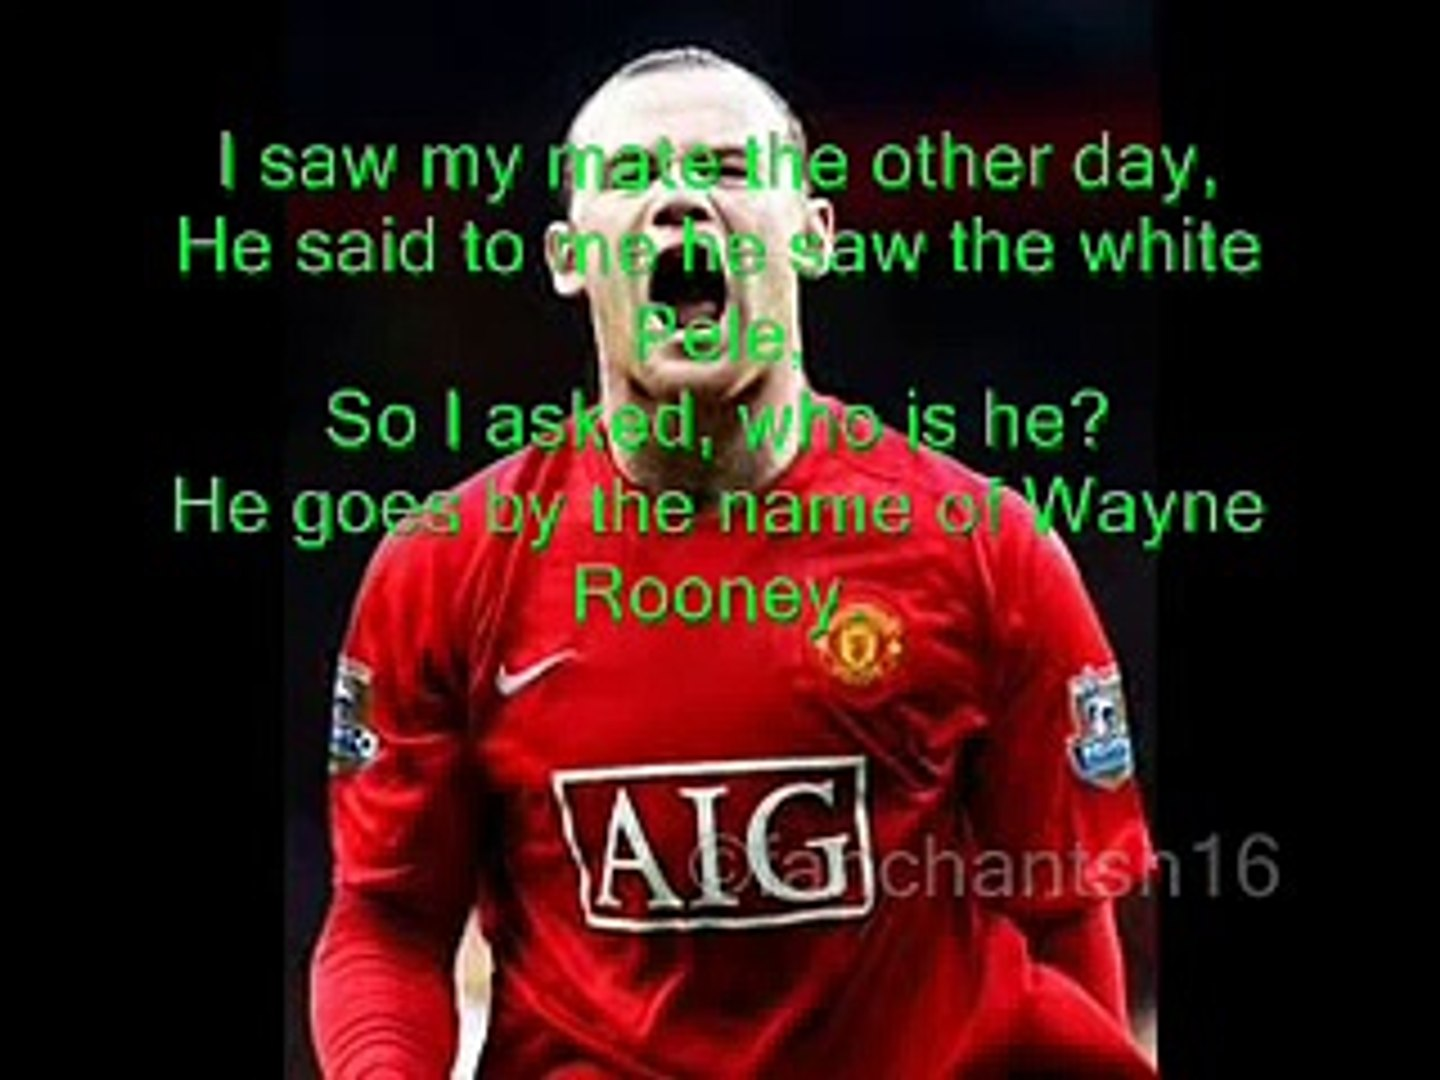 Learn about Wayne Rooney